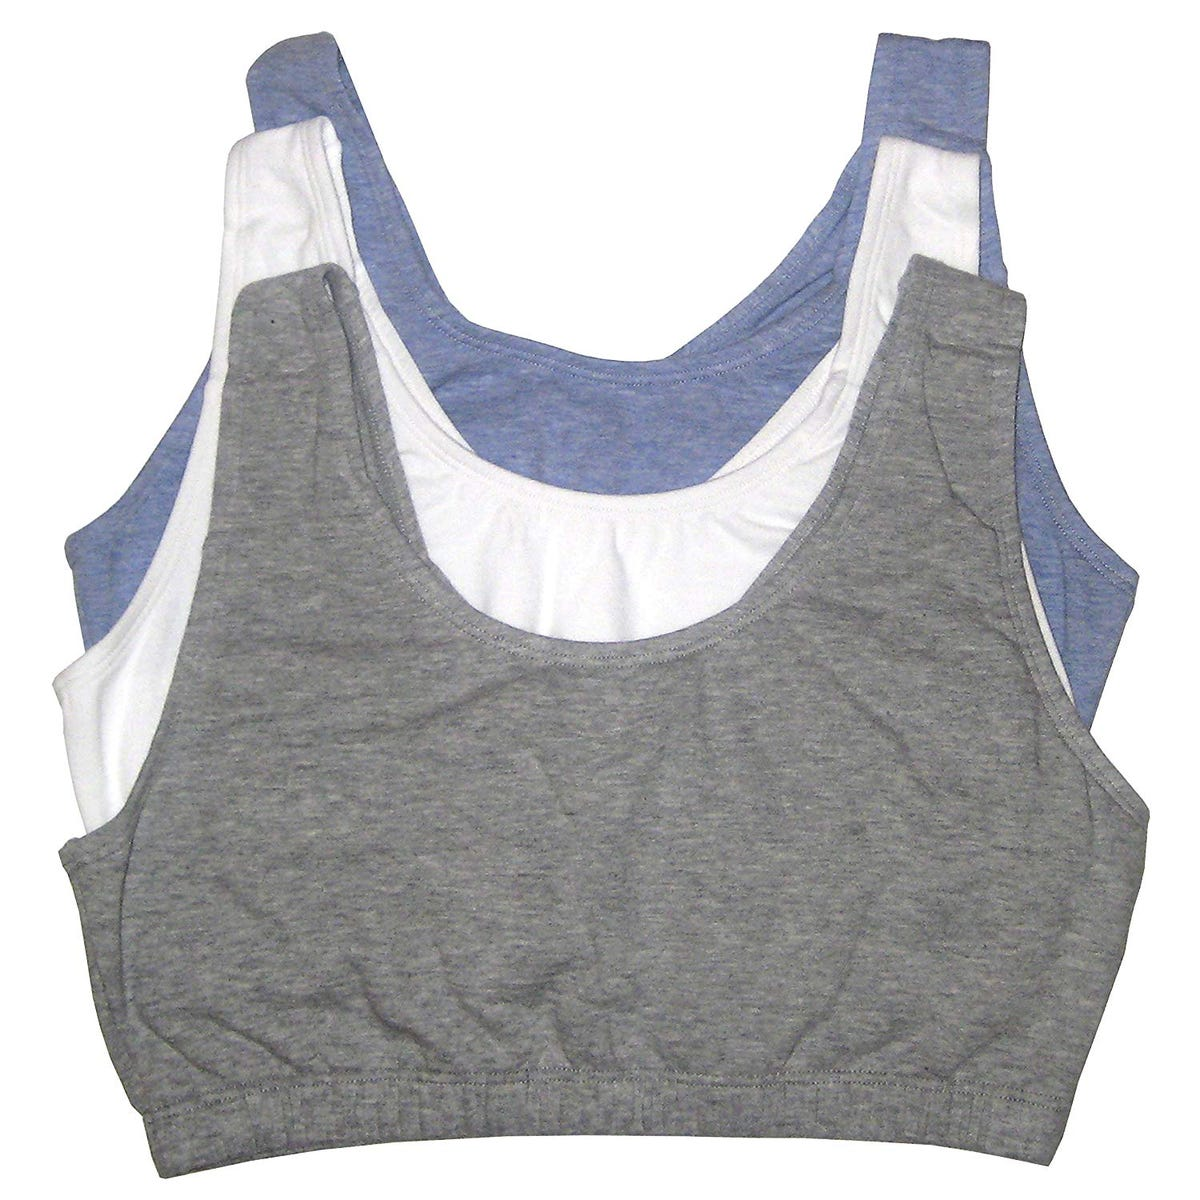 3794ff7ff26 Top-Rated Sports Bras 2019 Real Women Reviews